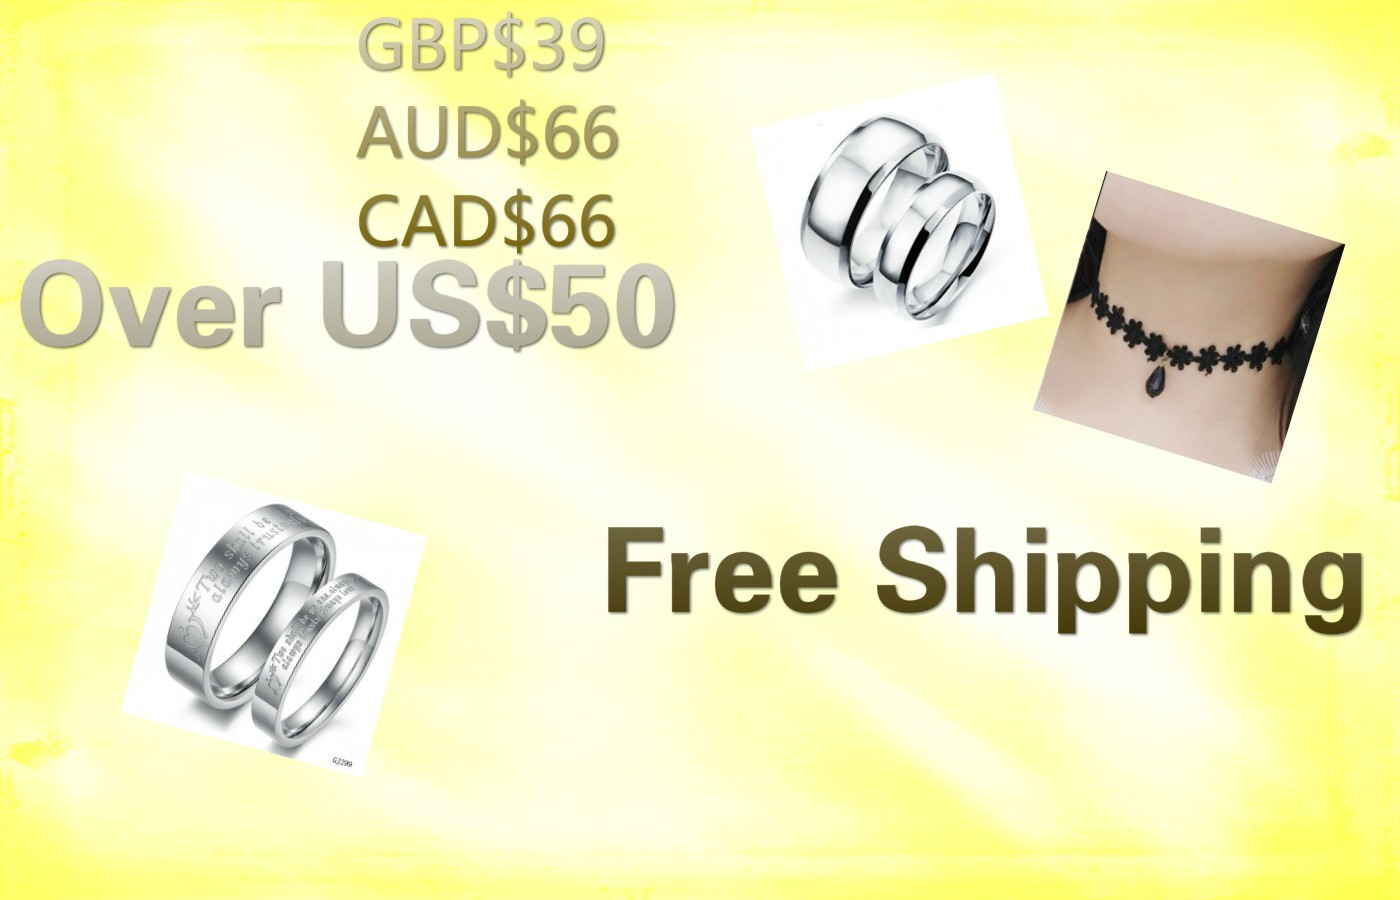 Over US$50 Free Shipping